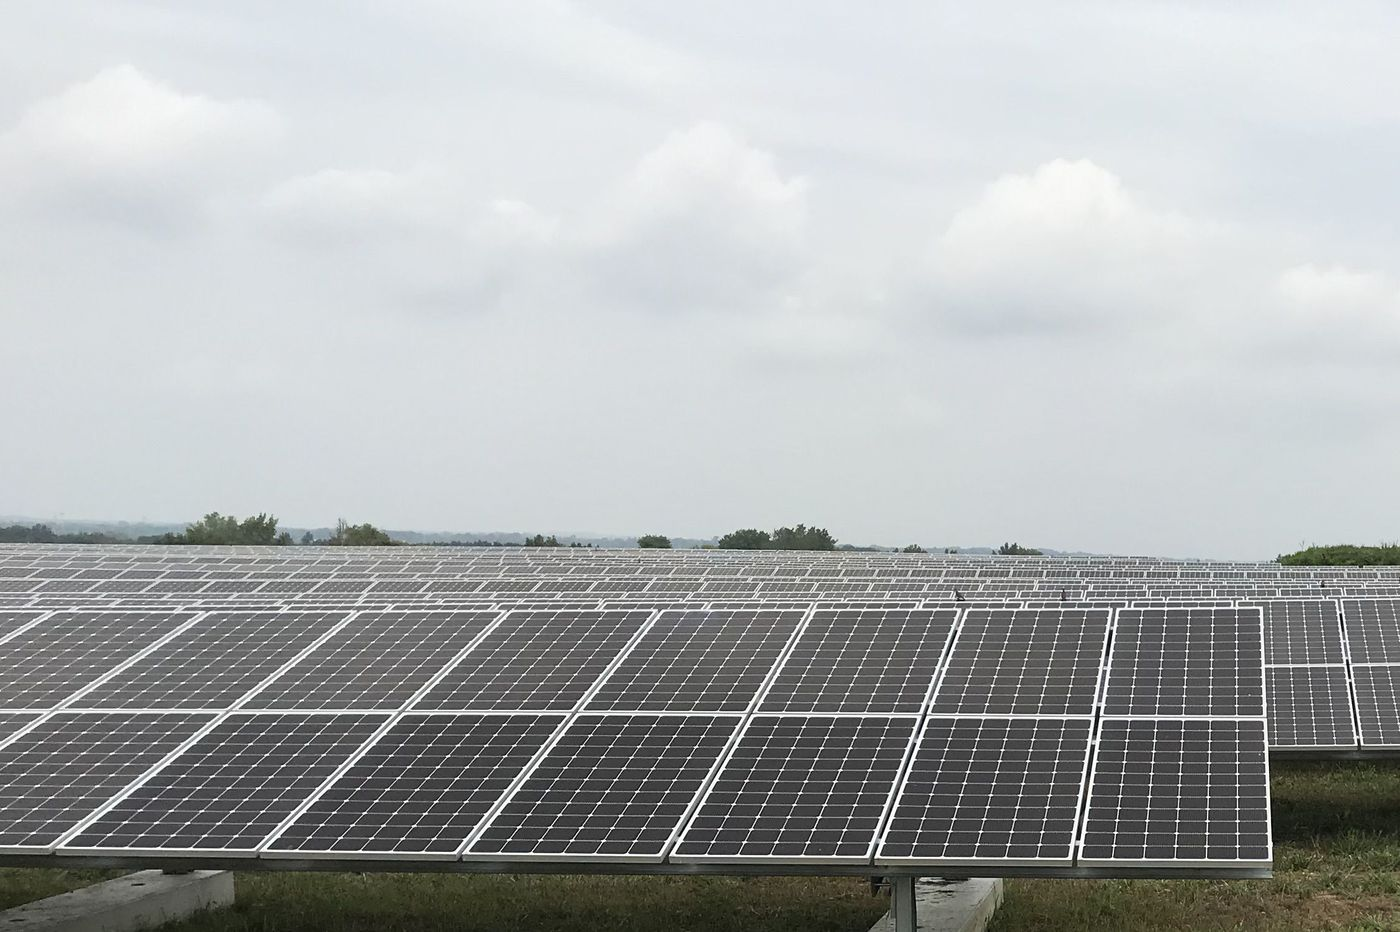 South Jersey Superfund site transformed into solar field capable of powering up to 2,600 homes